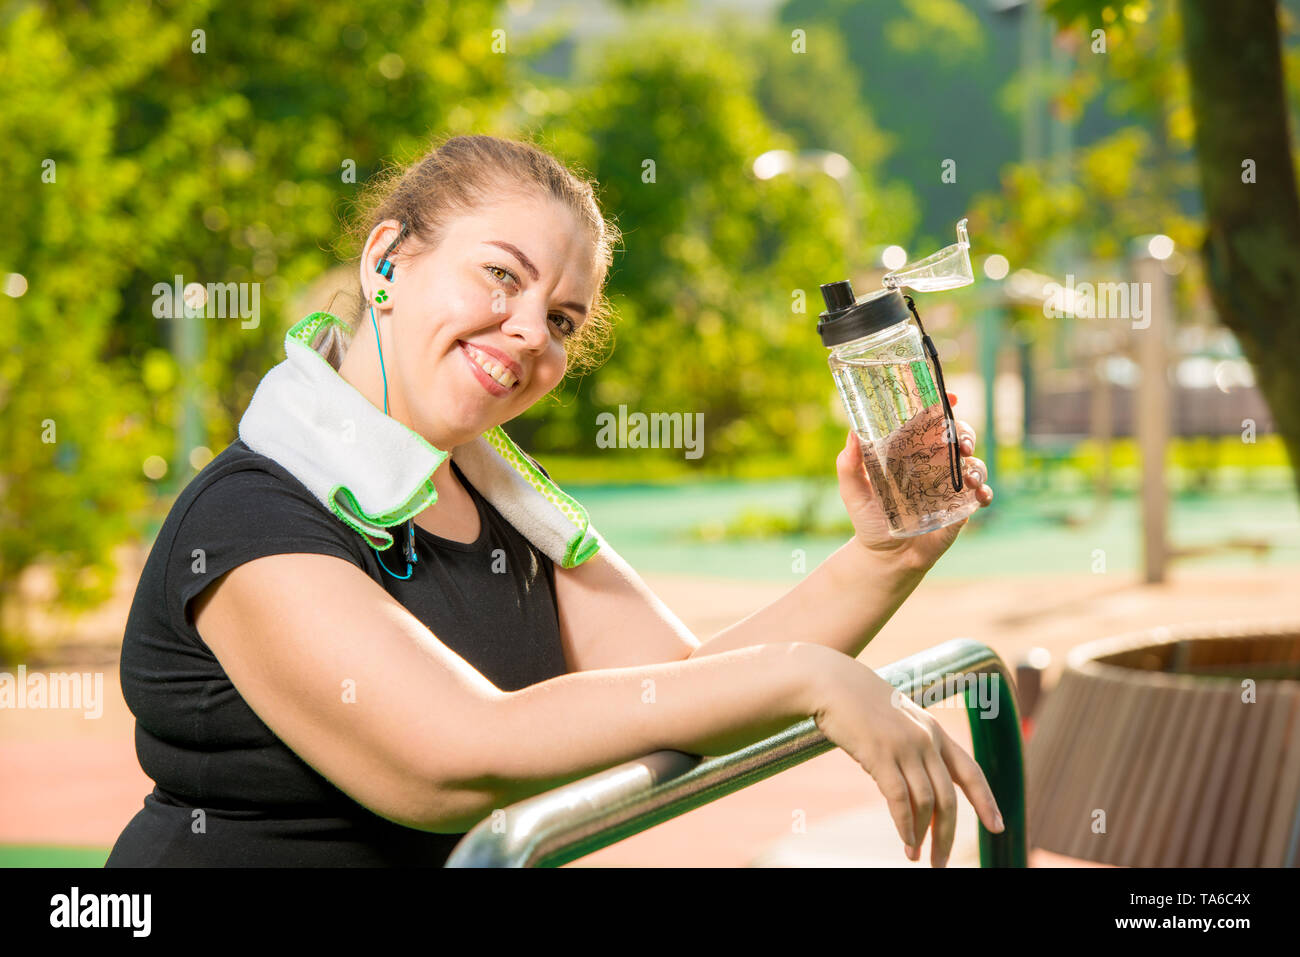 portrait of a happy oversized woman with a bottle of water smiling, portrait after a workout in the park - Stock Image